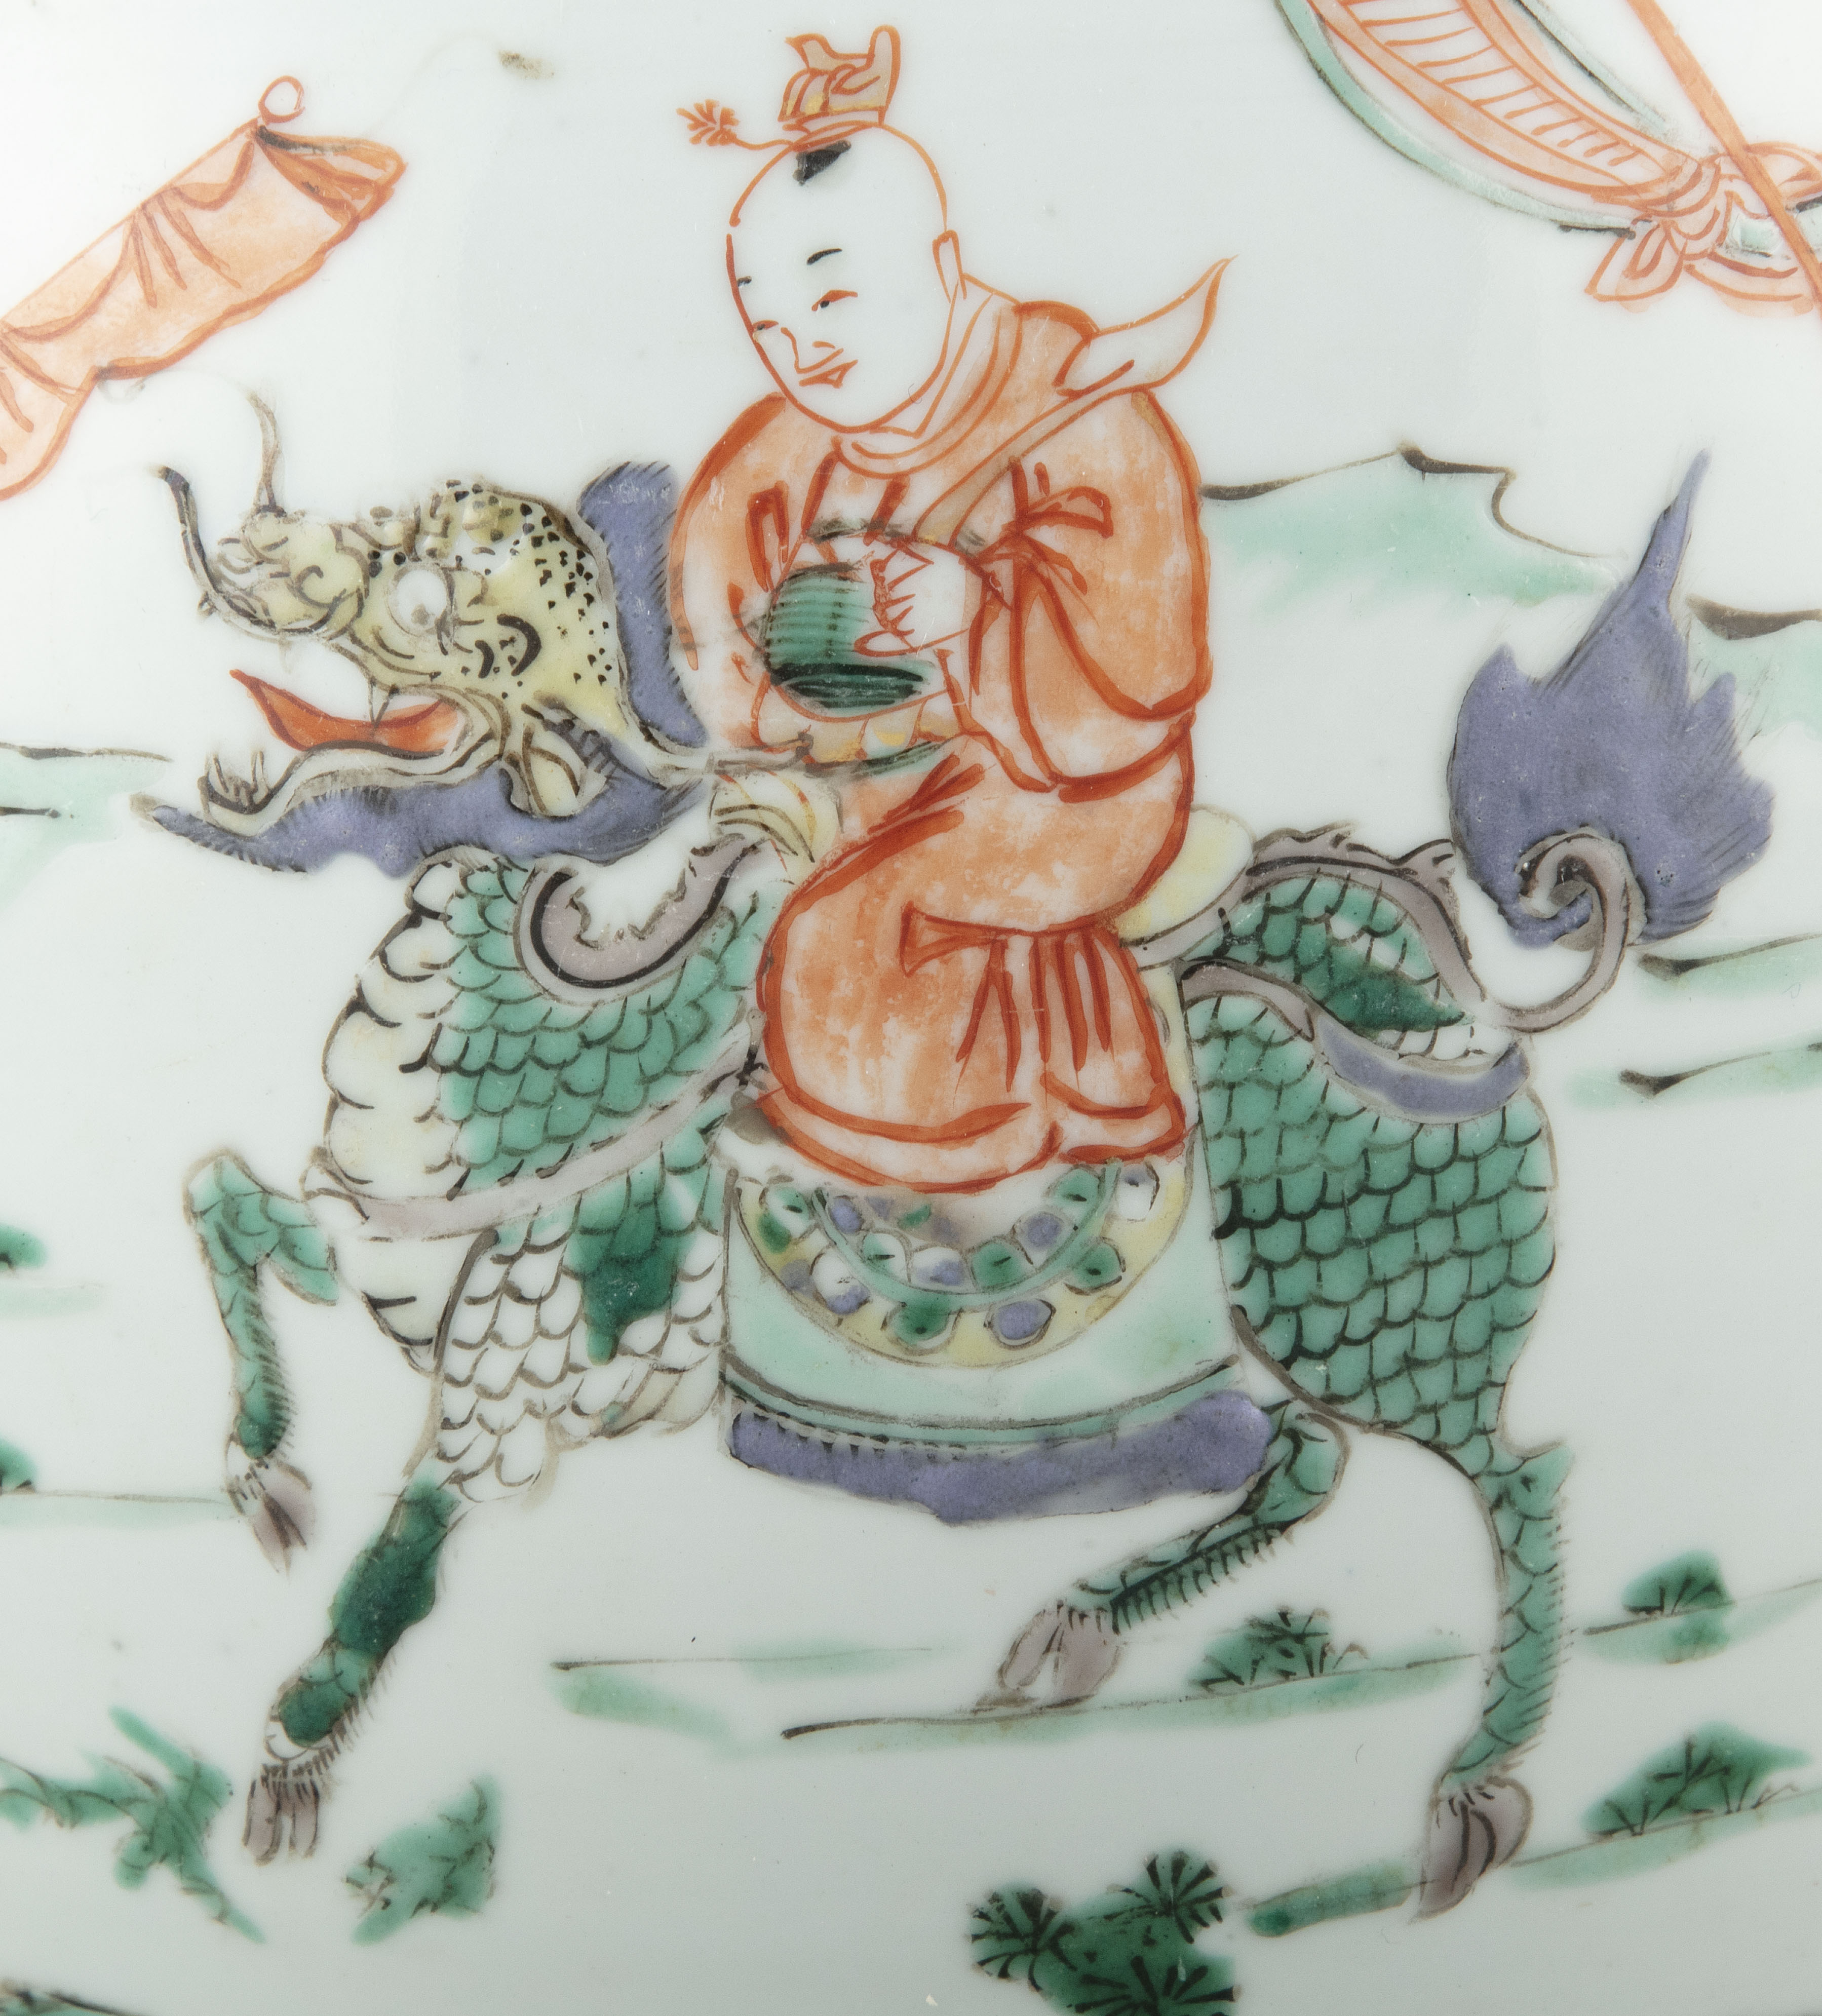 A FAMILLE VERTE 'BOY AND QILIN' PORCELAIN GINGER JAR China, Qing Dynasty, Kangxi period Adorned in - Image 4 of 20